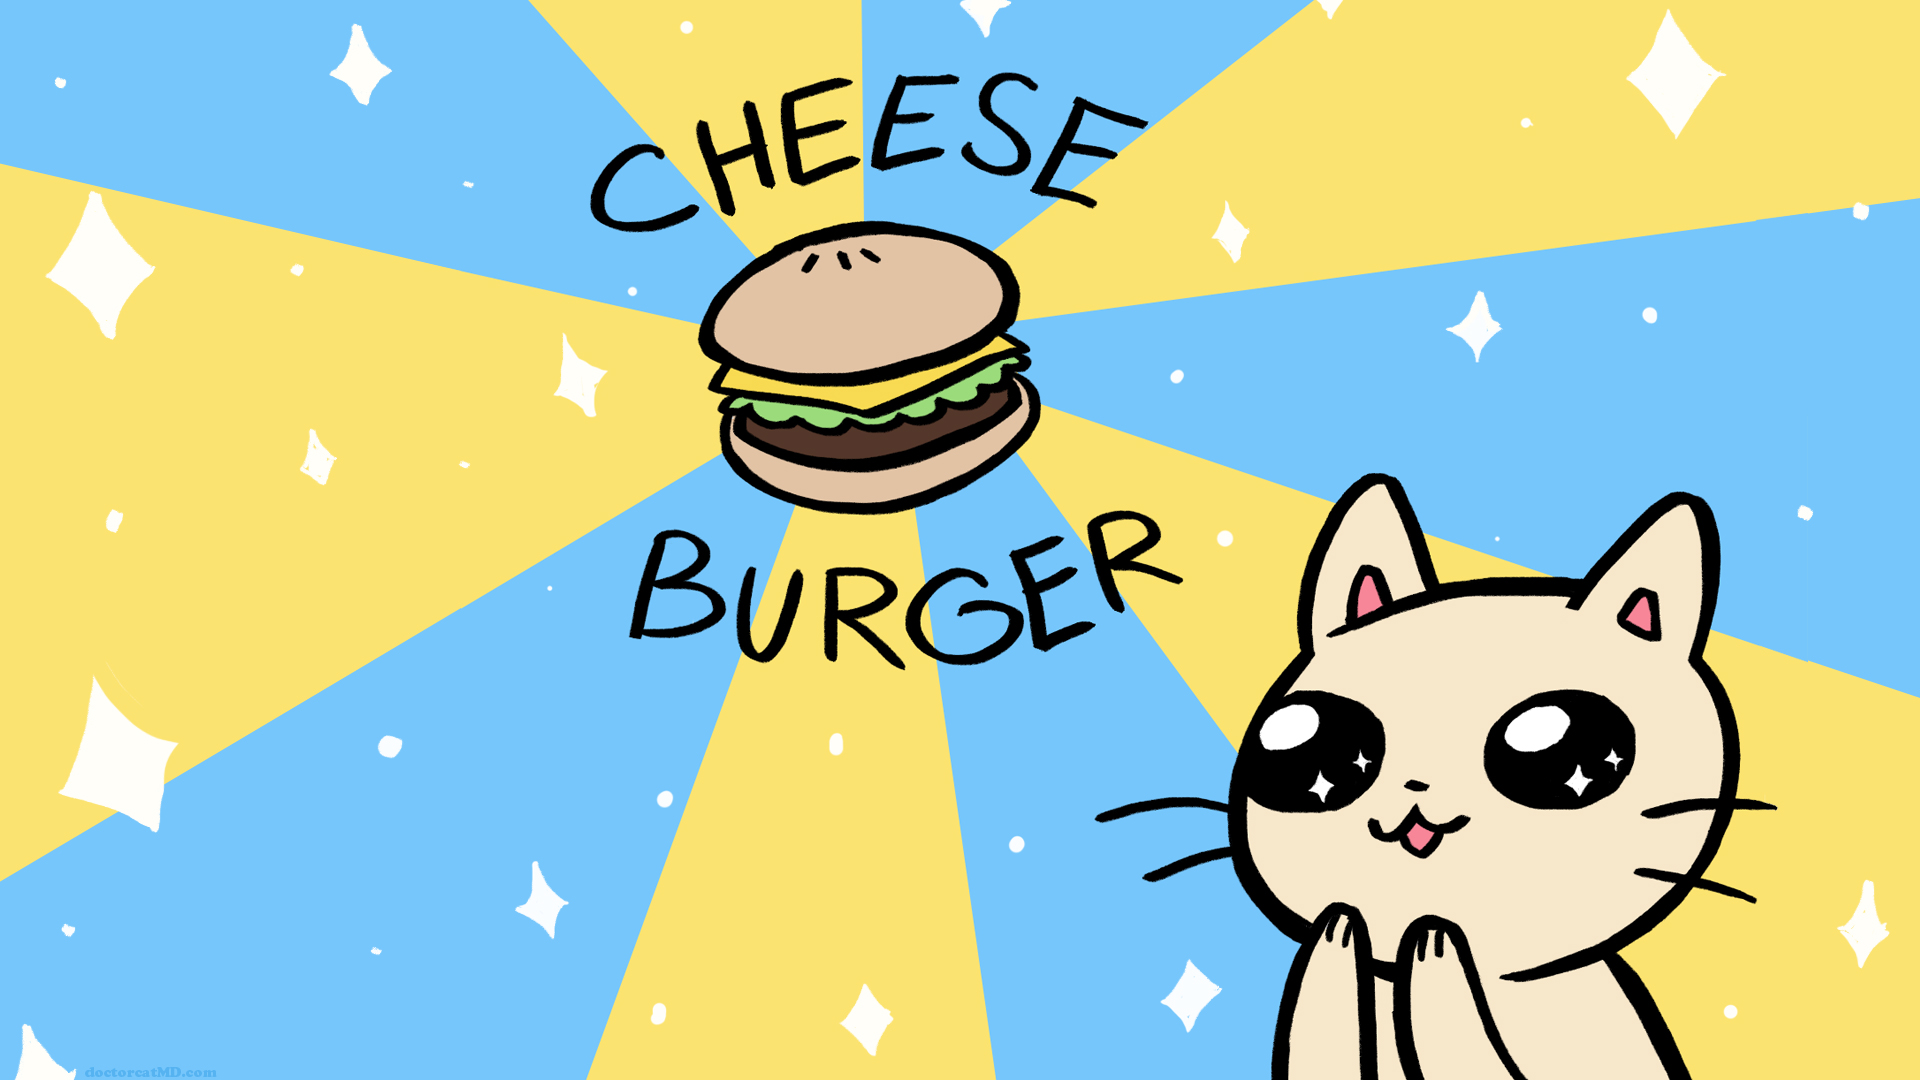 cheese-burger-for-me-D-wallpaper-wpc5803403